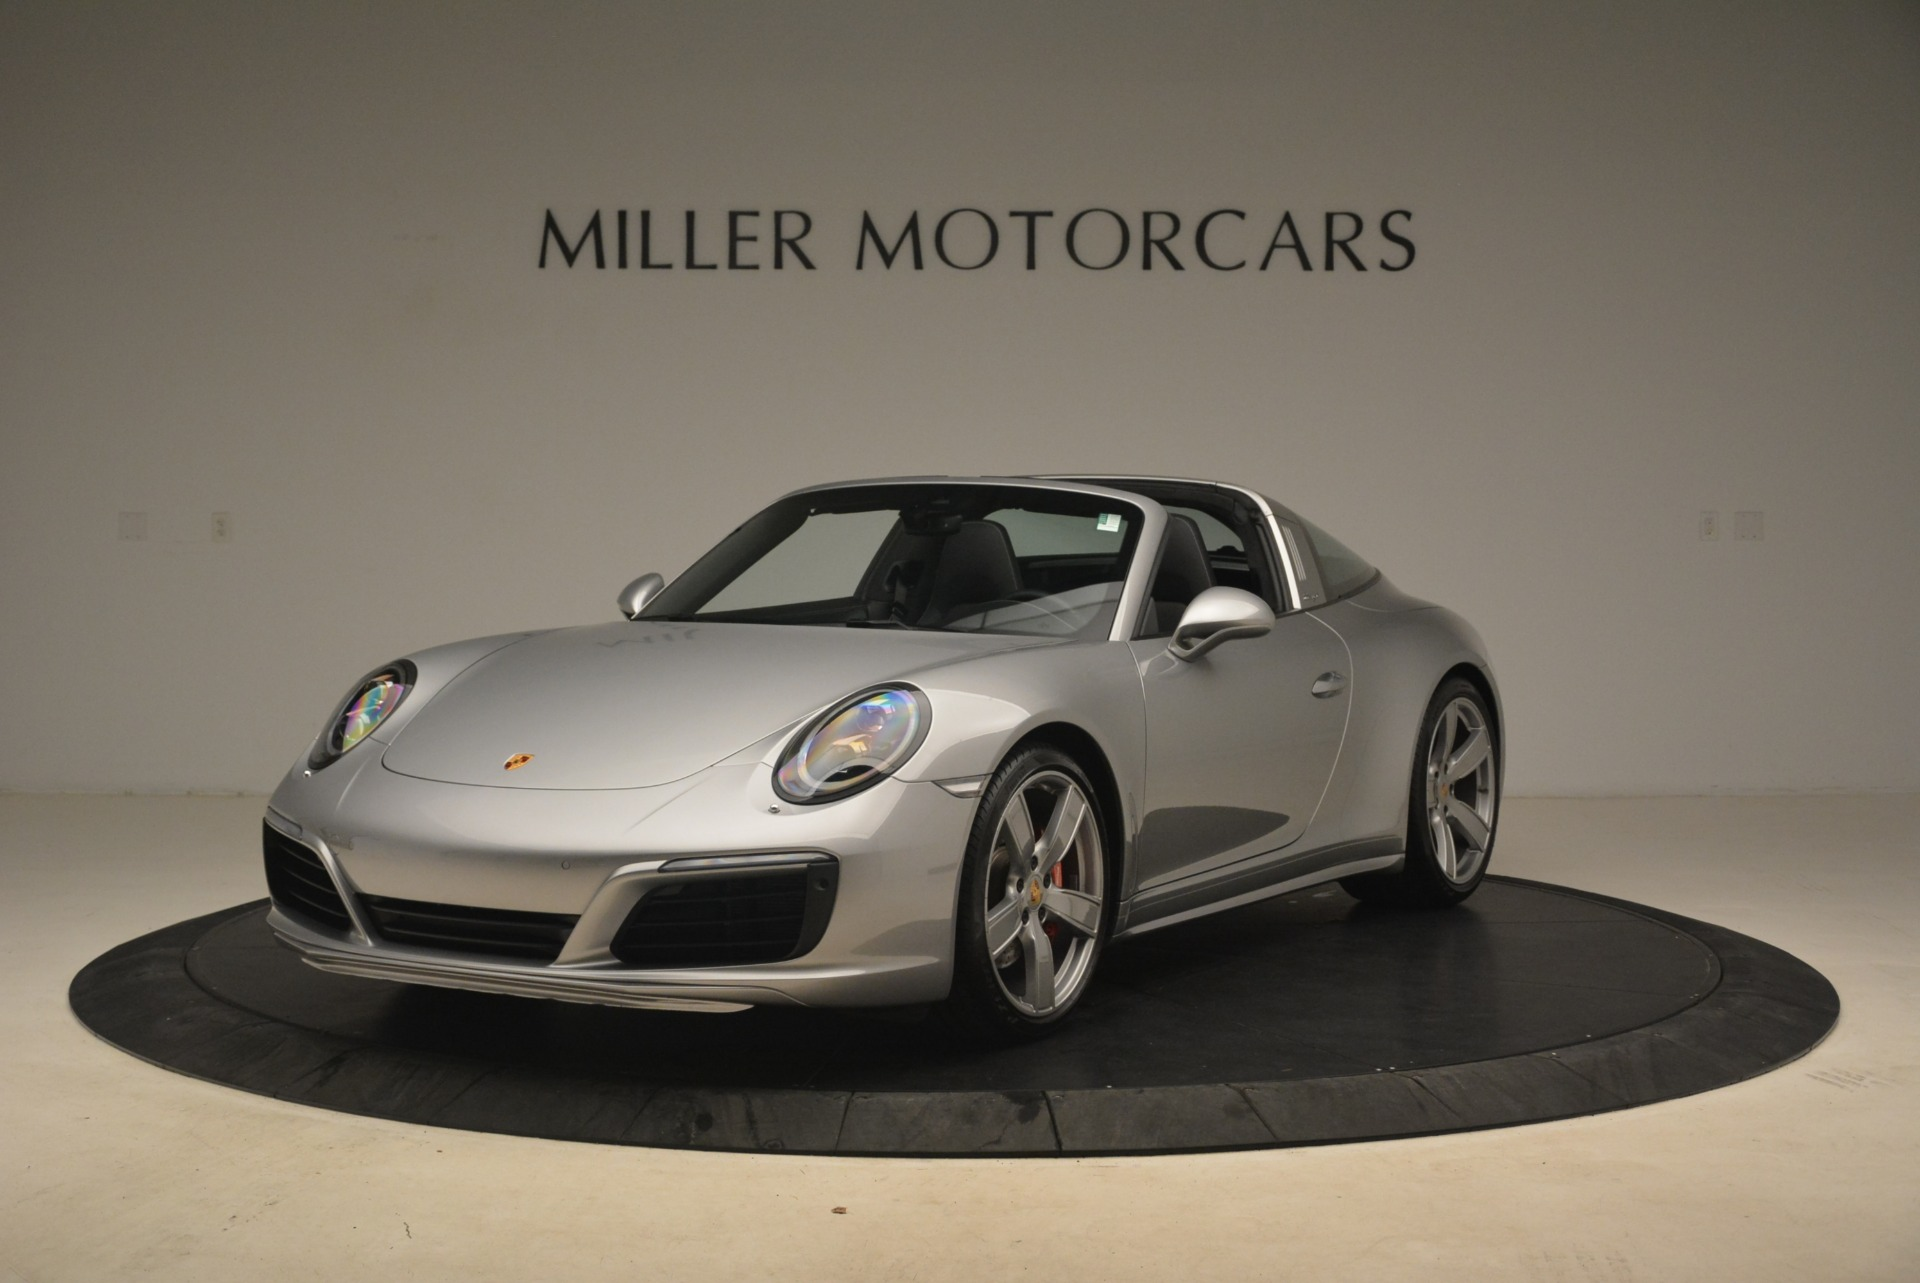 Used 2017 Porsche 911 Targa 4S for sale Sold at Pagani of Greenwich in Greenwich CT 06830 1